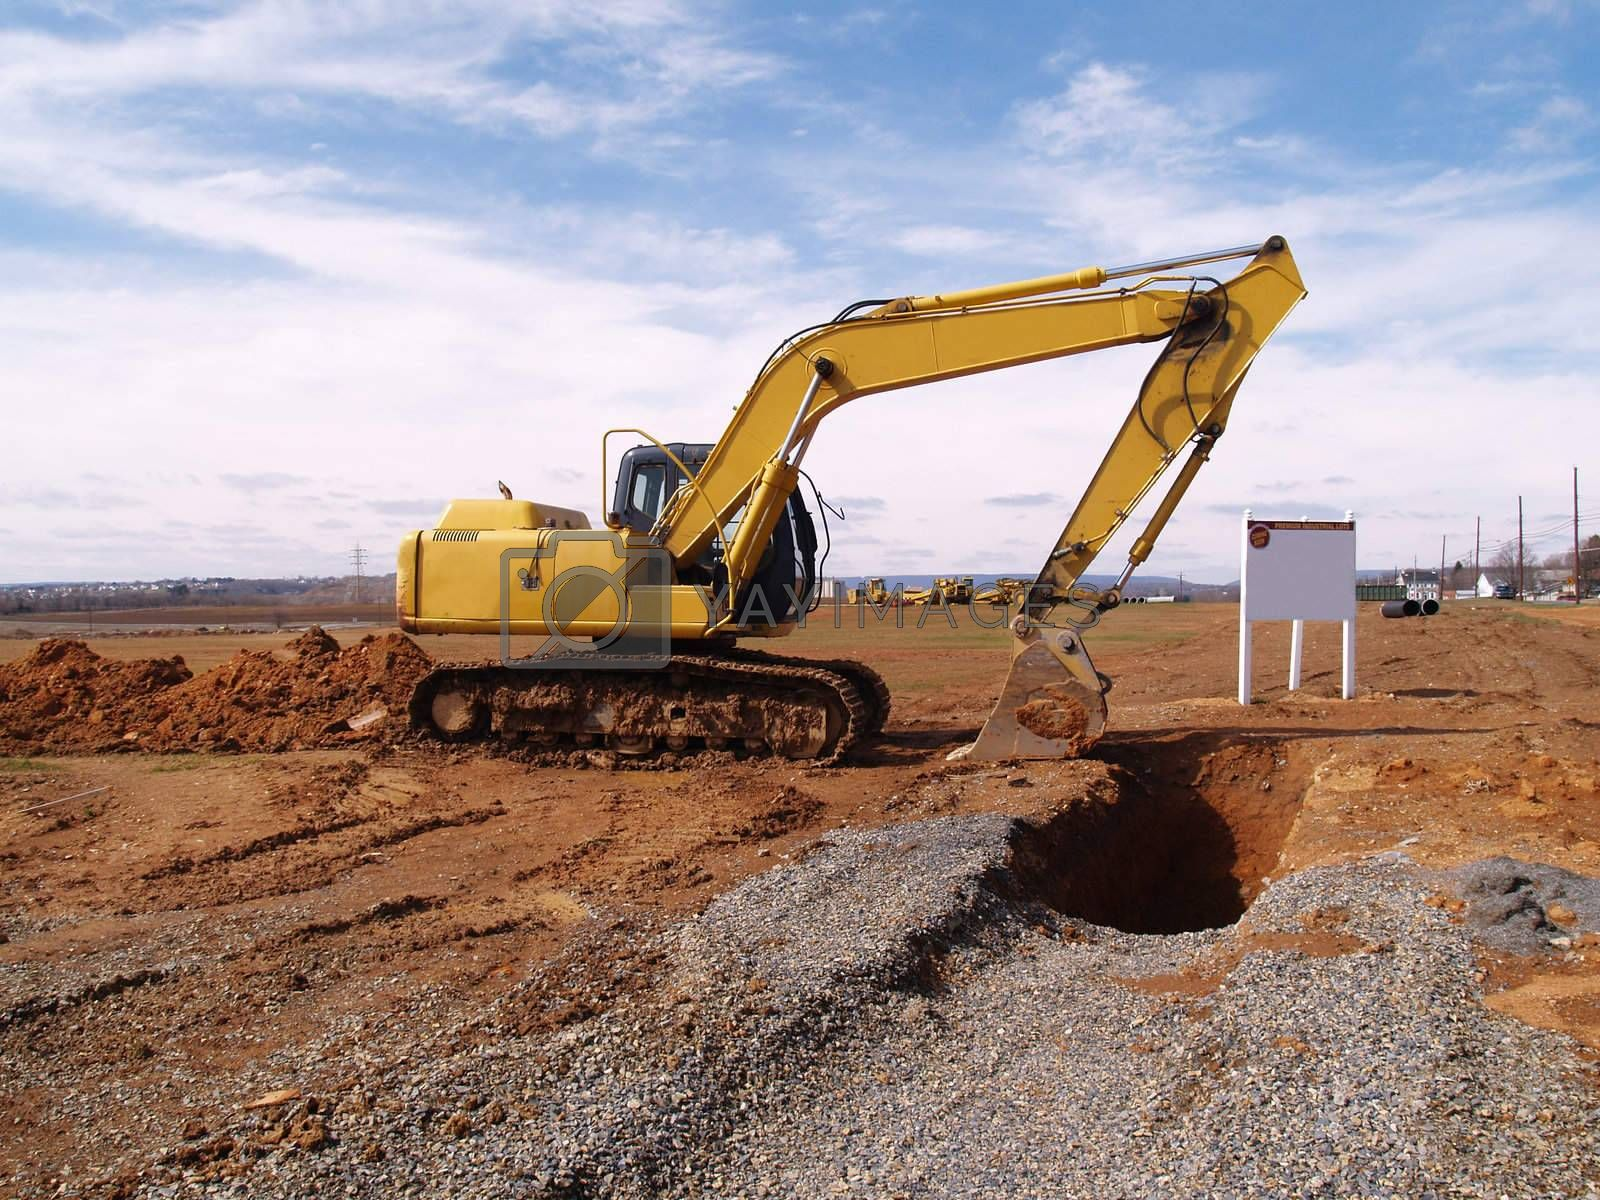 heavy duty construction equipment at a work site